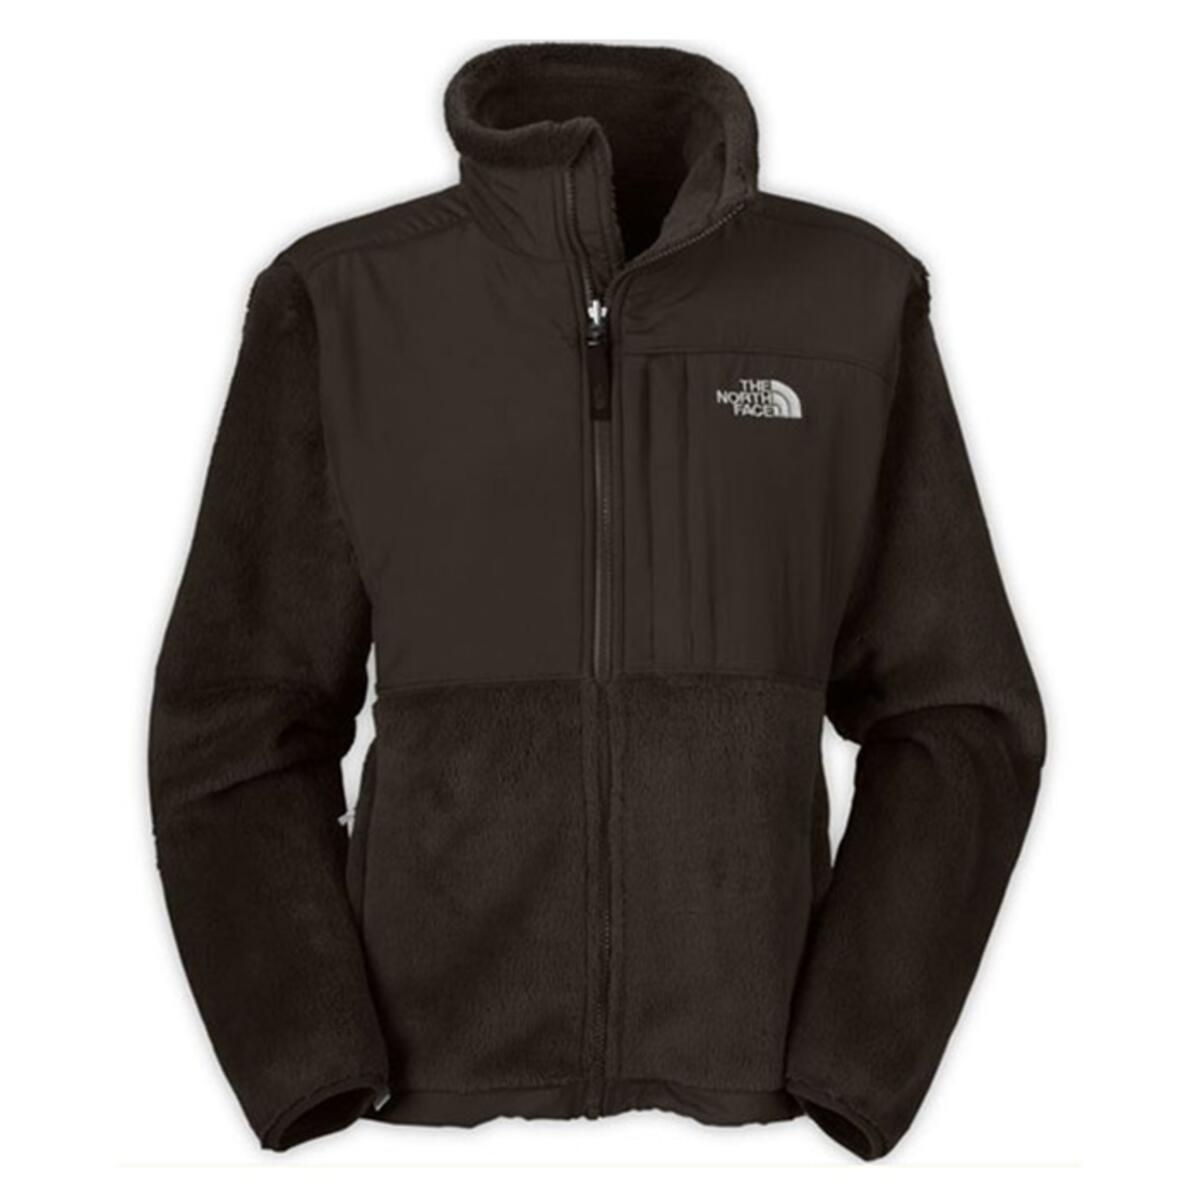 ee33018f1 The North Face Women's Denali Thermal Jacket